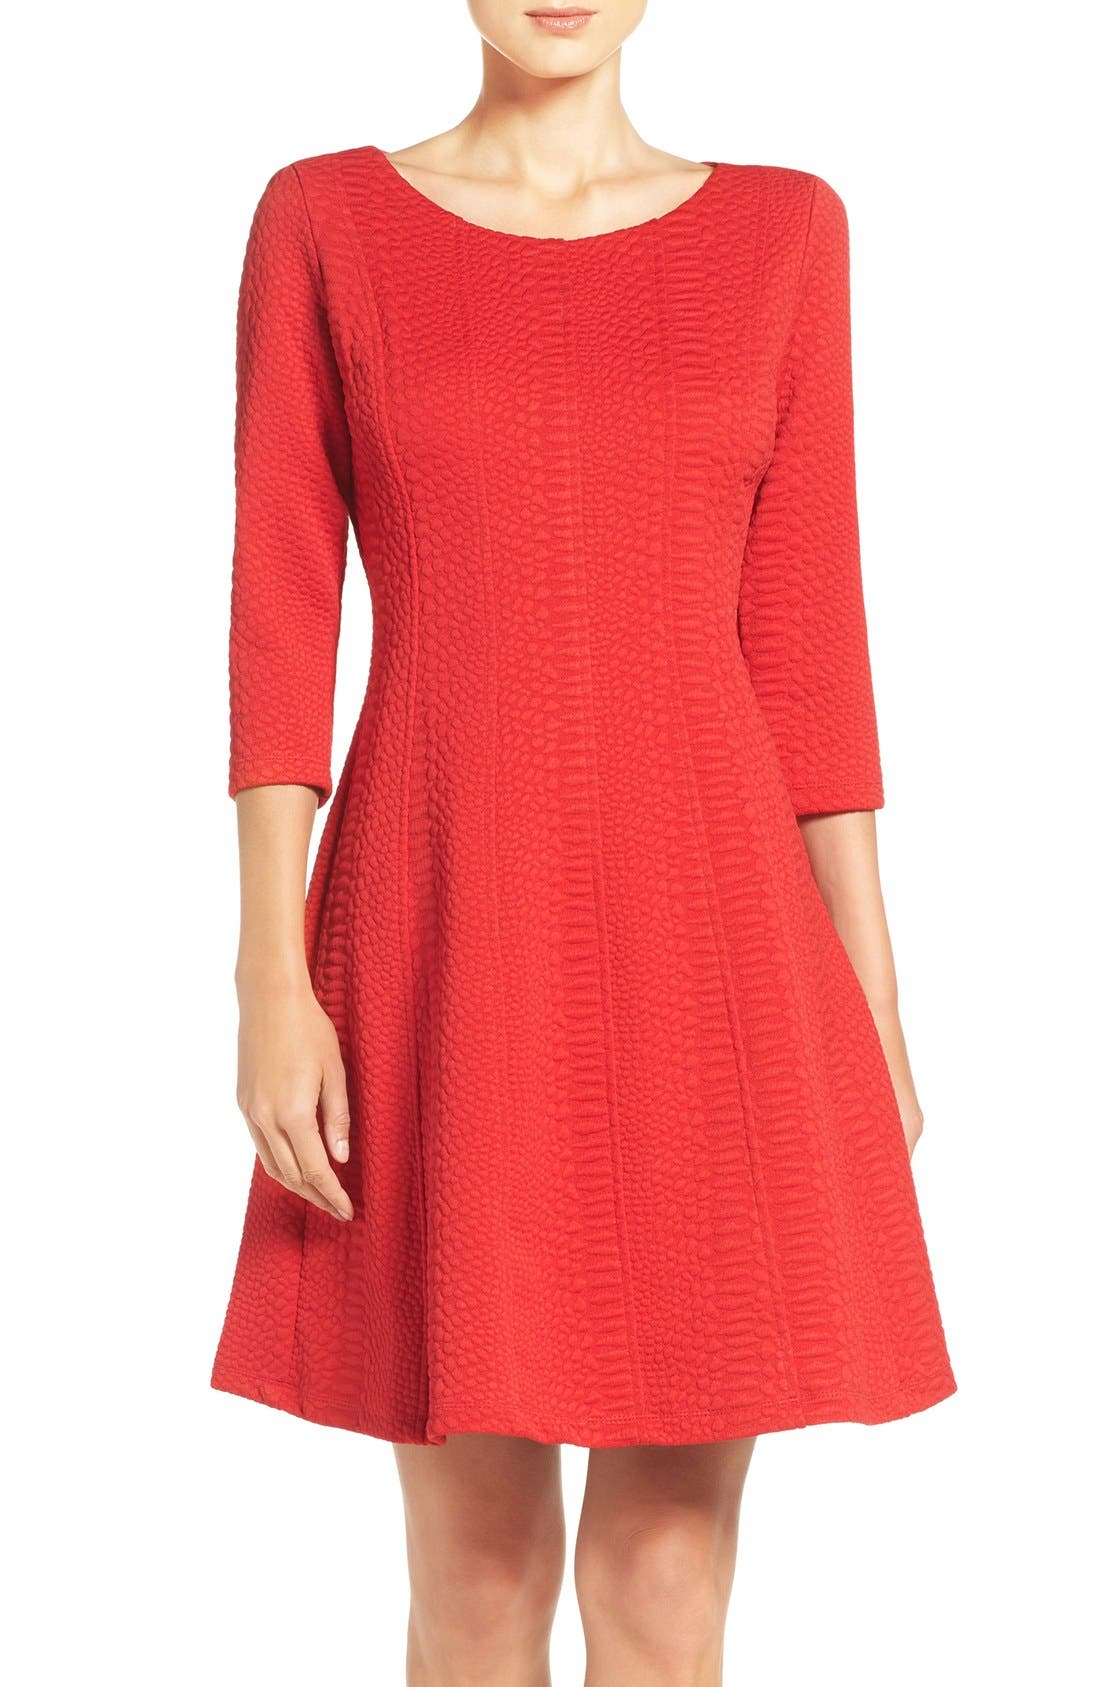 Jacquard Knit Fit & Flare Dress,                             Main thumbnail 1, color,                             Red